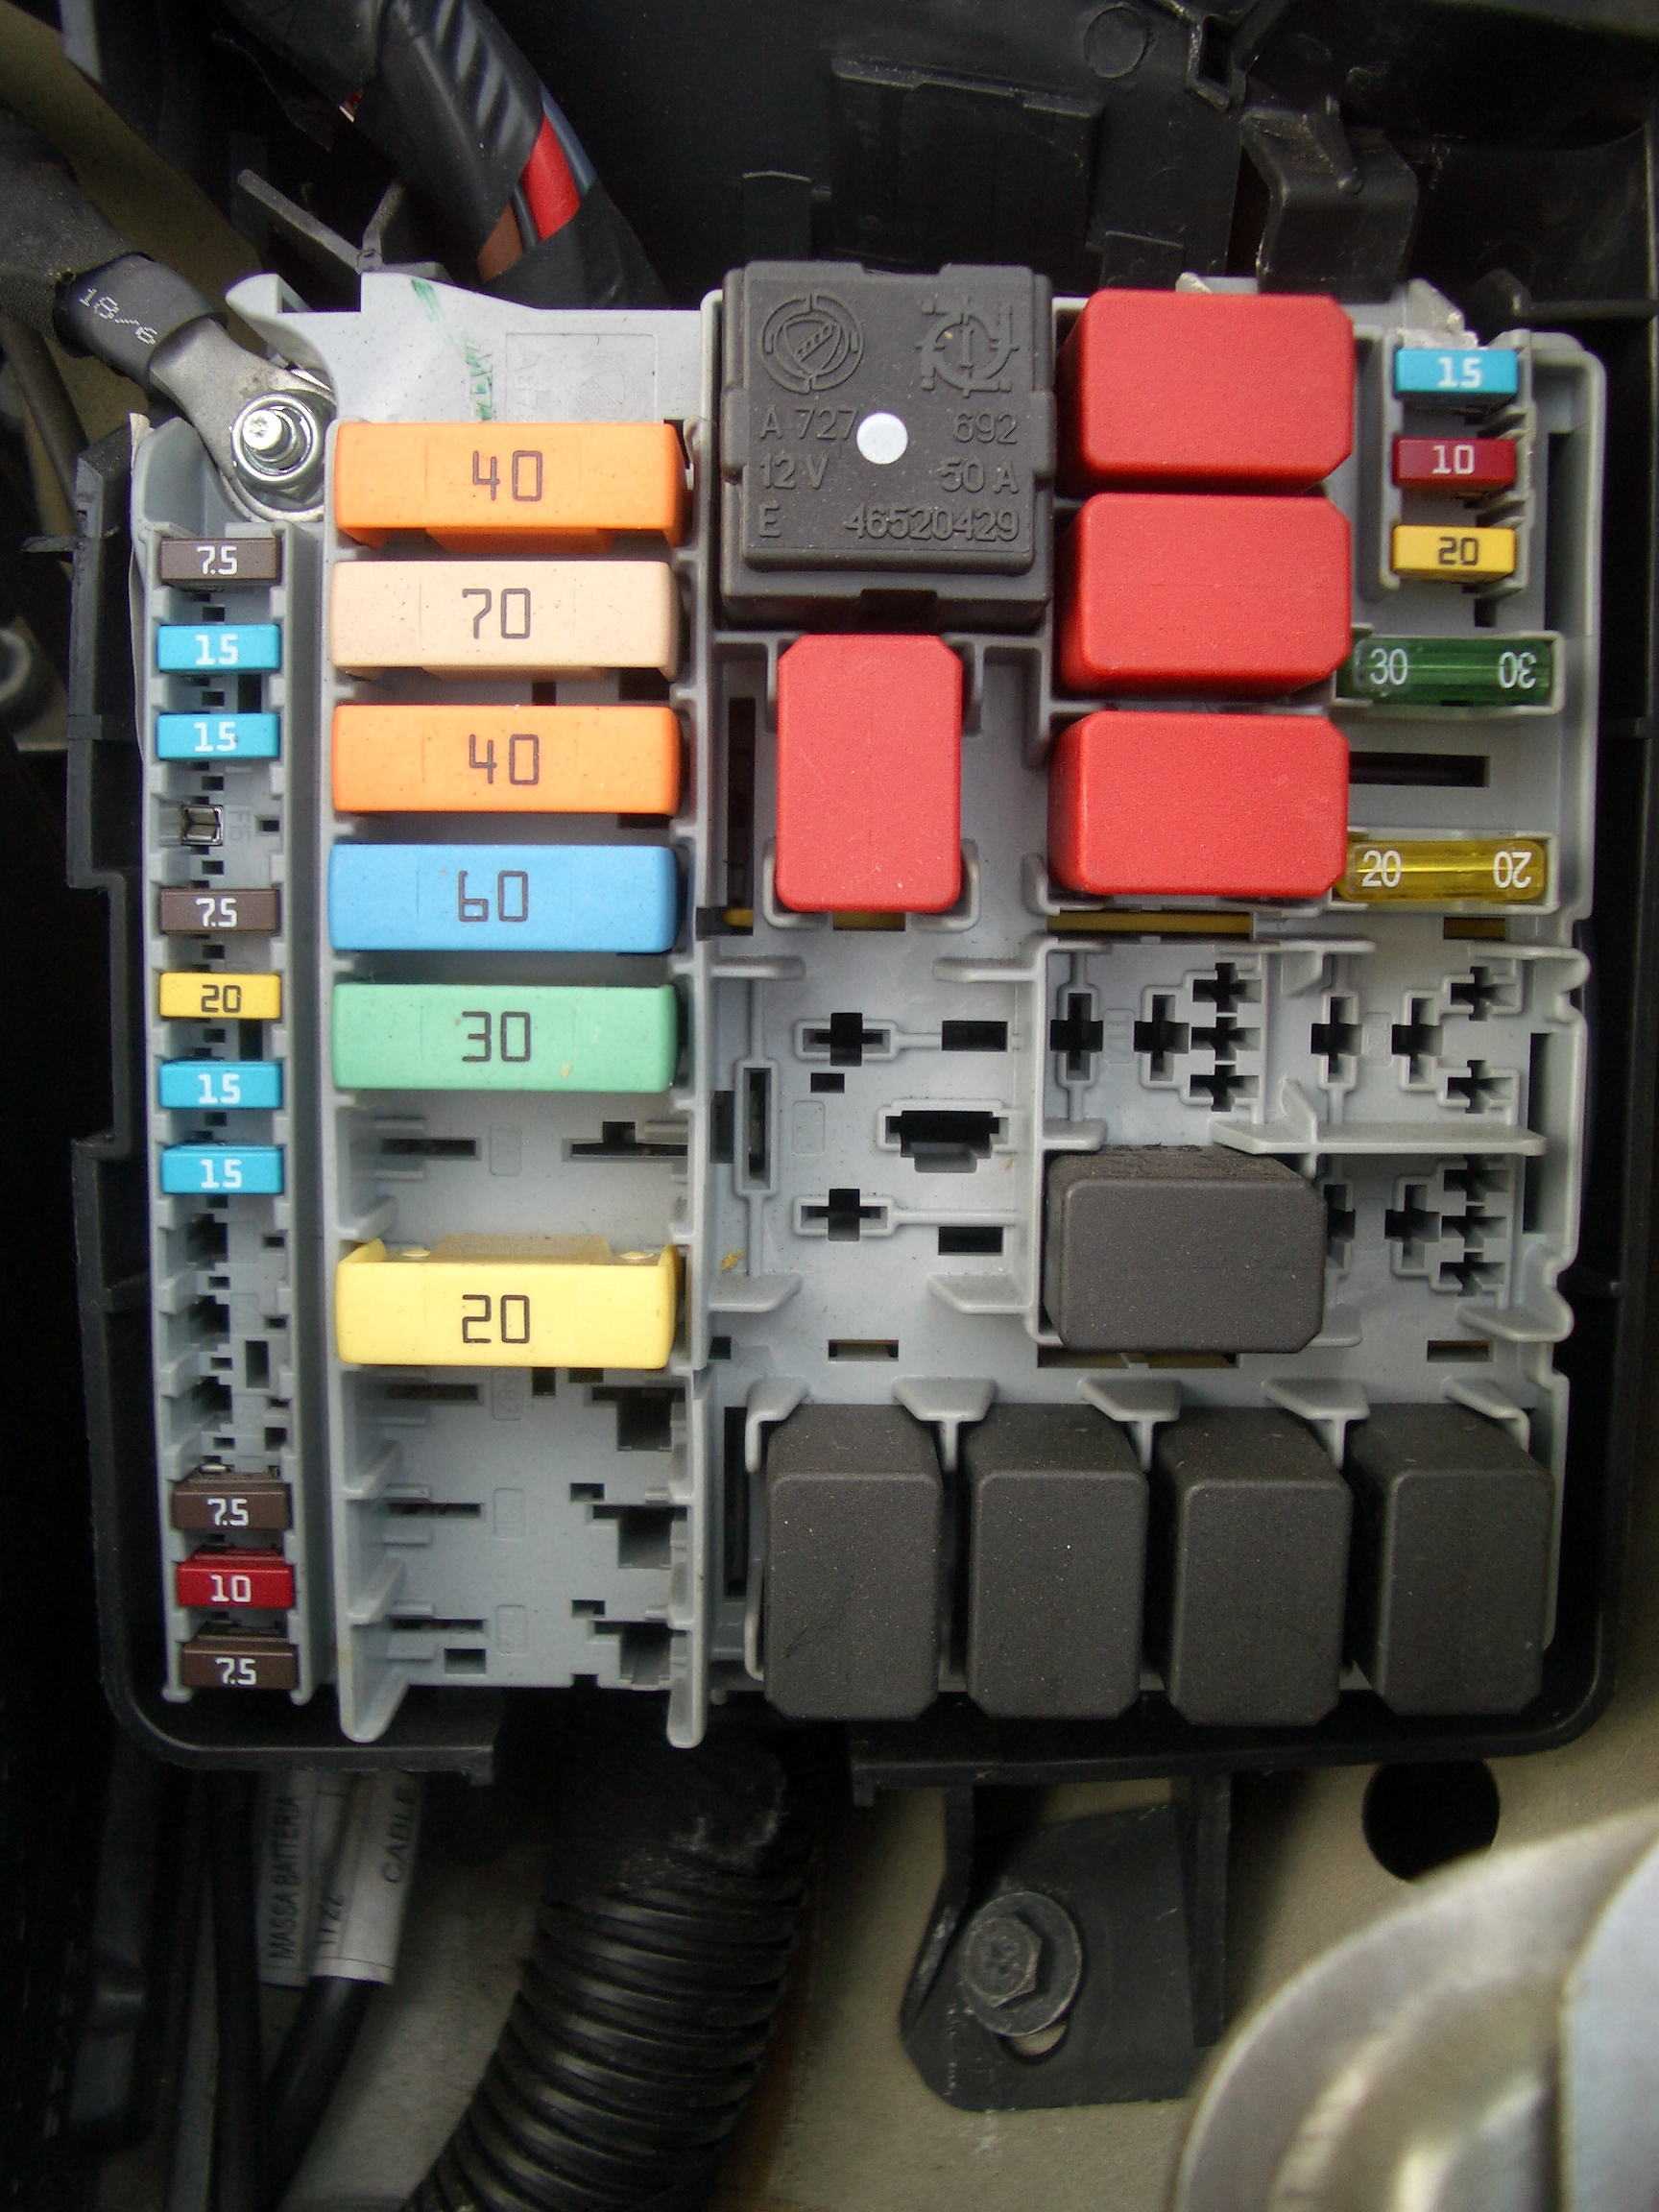 hight resolution of 2012 fiat 500 fuse box wiring diagram third level fiat 500 fuse layout 2012 fiat 500